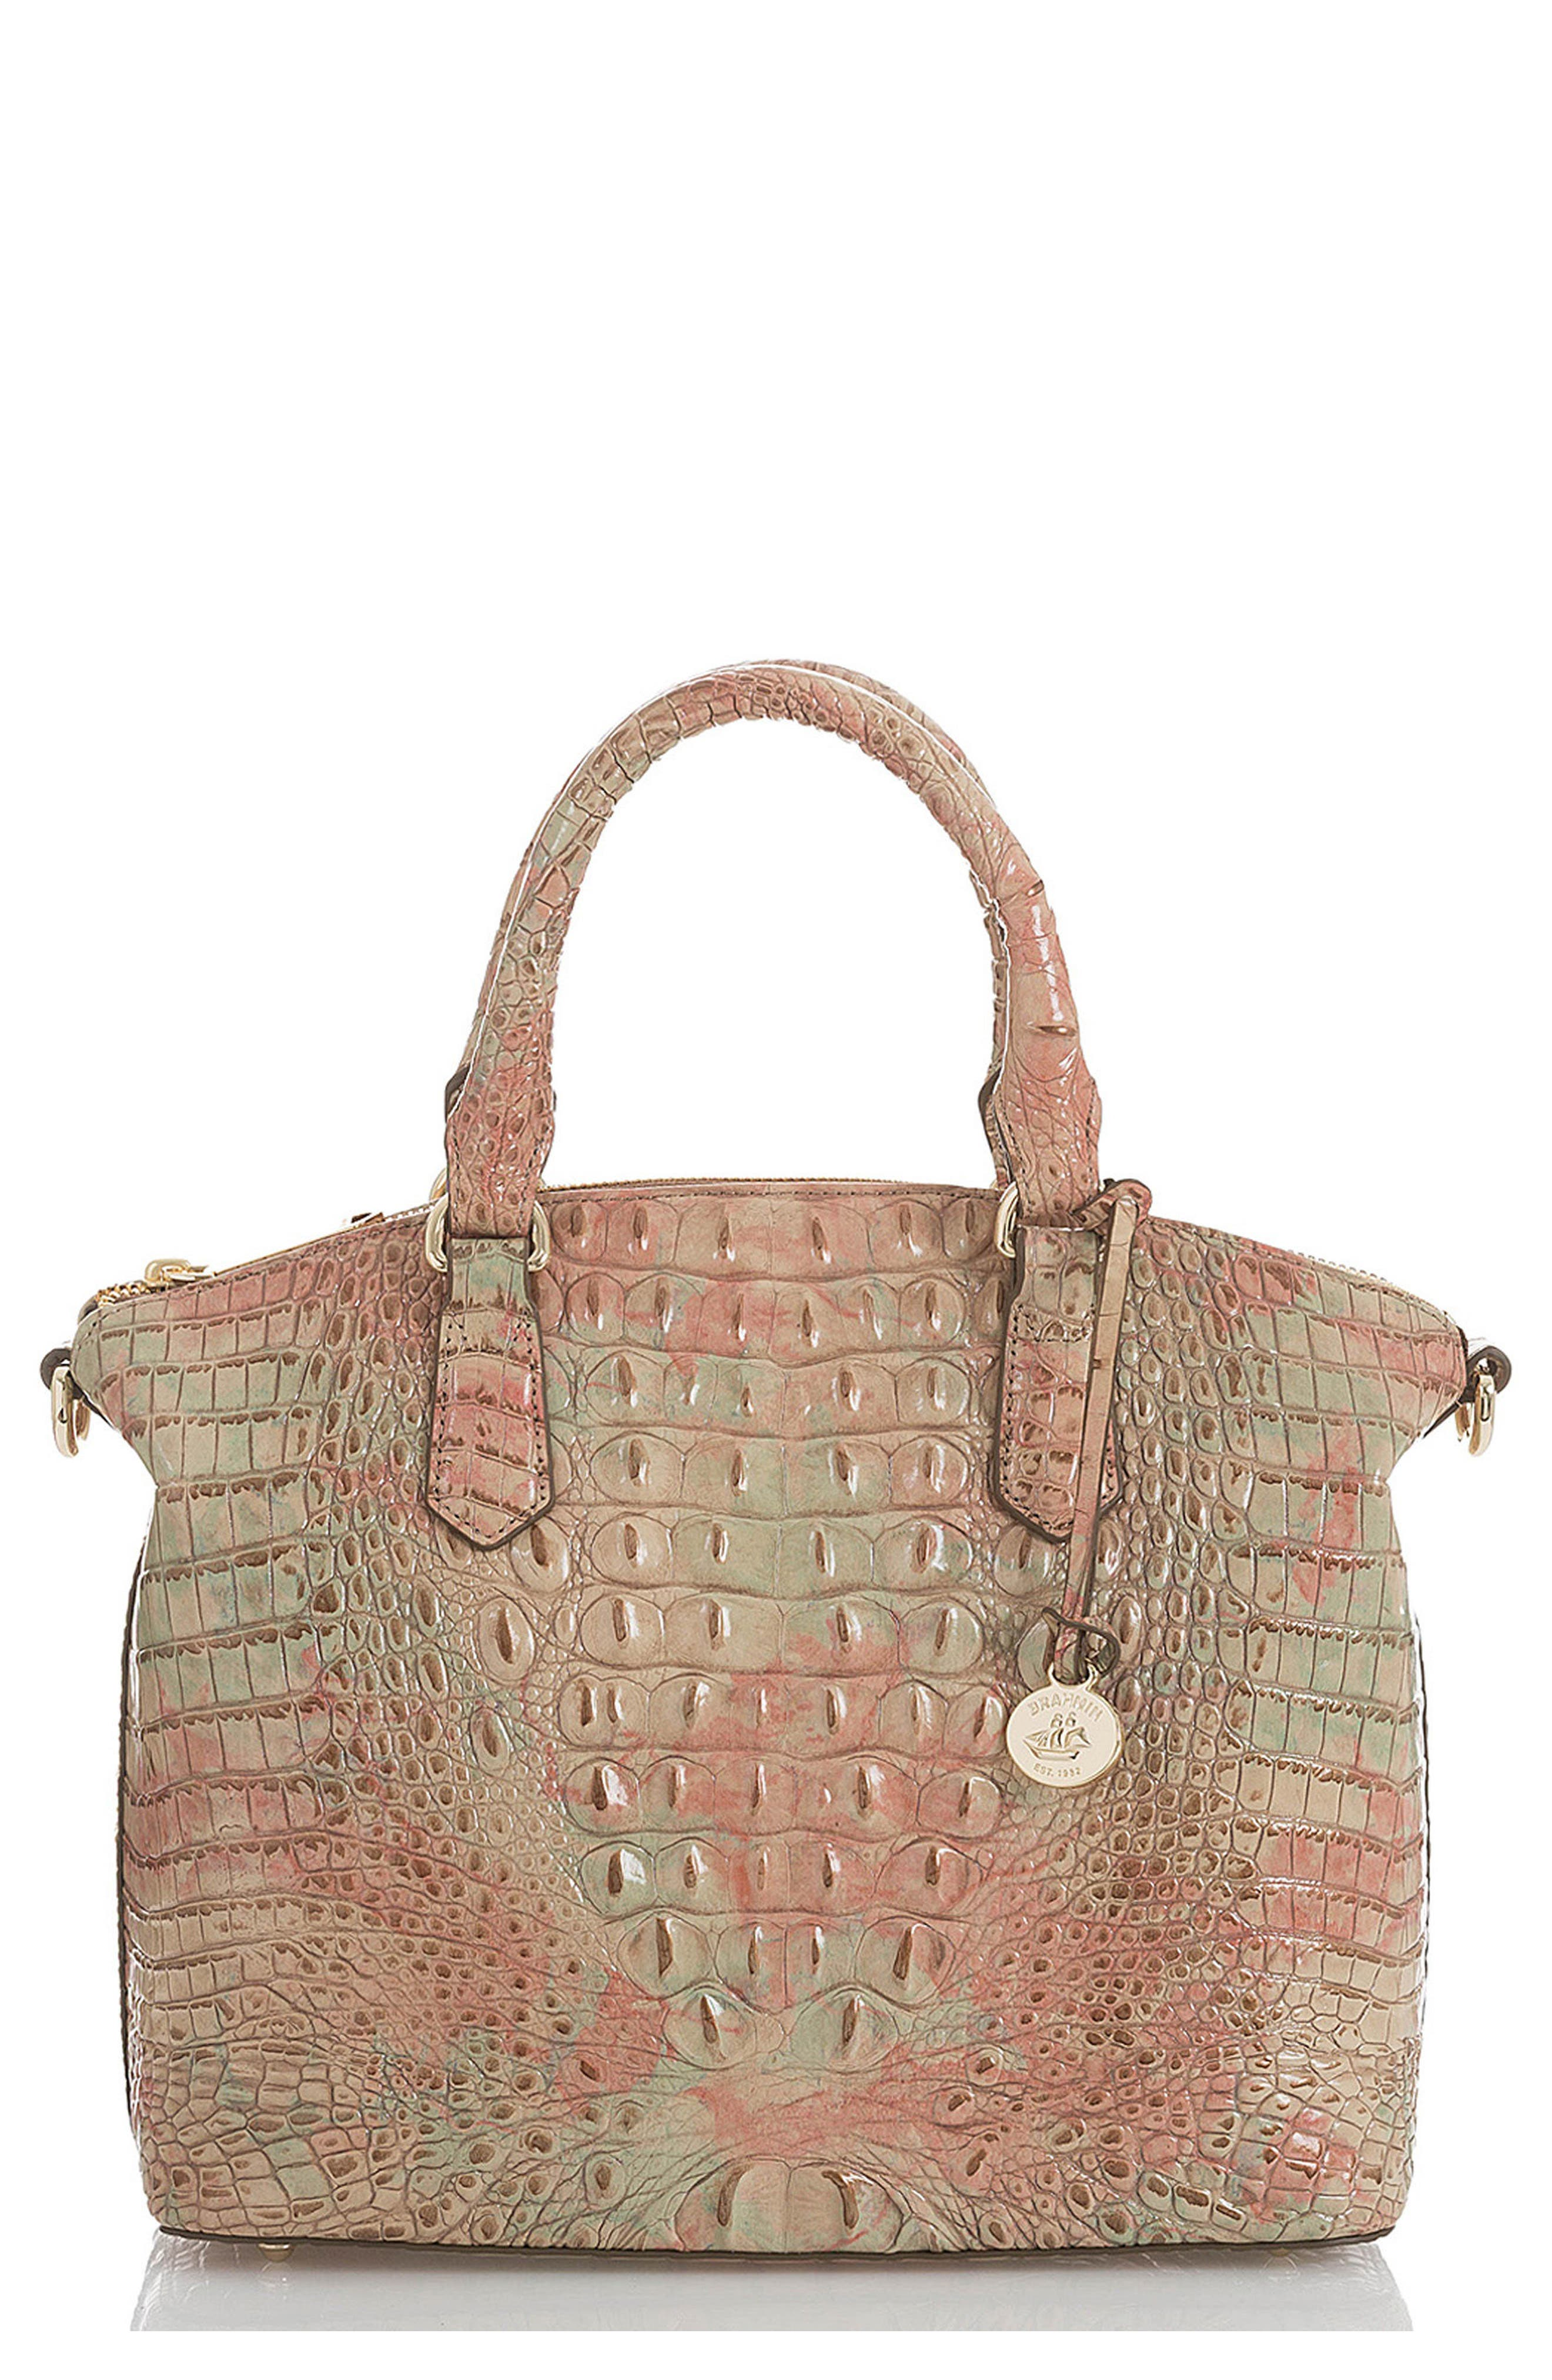 'Medium Duxbury' Croc Embossed Leather Satchel,                             Main thumbnail 1, color,                             Sahara